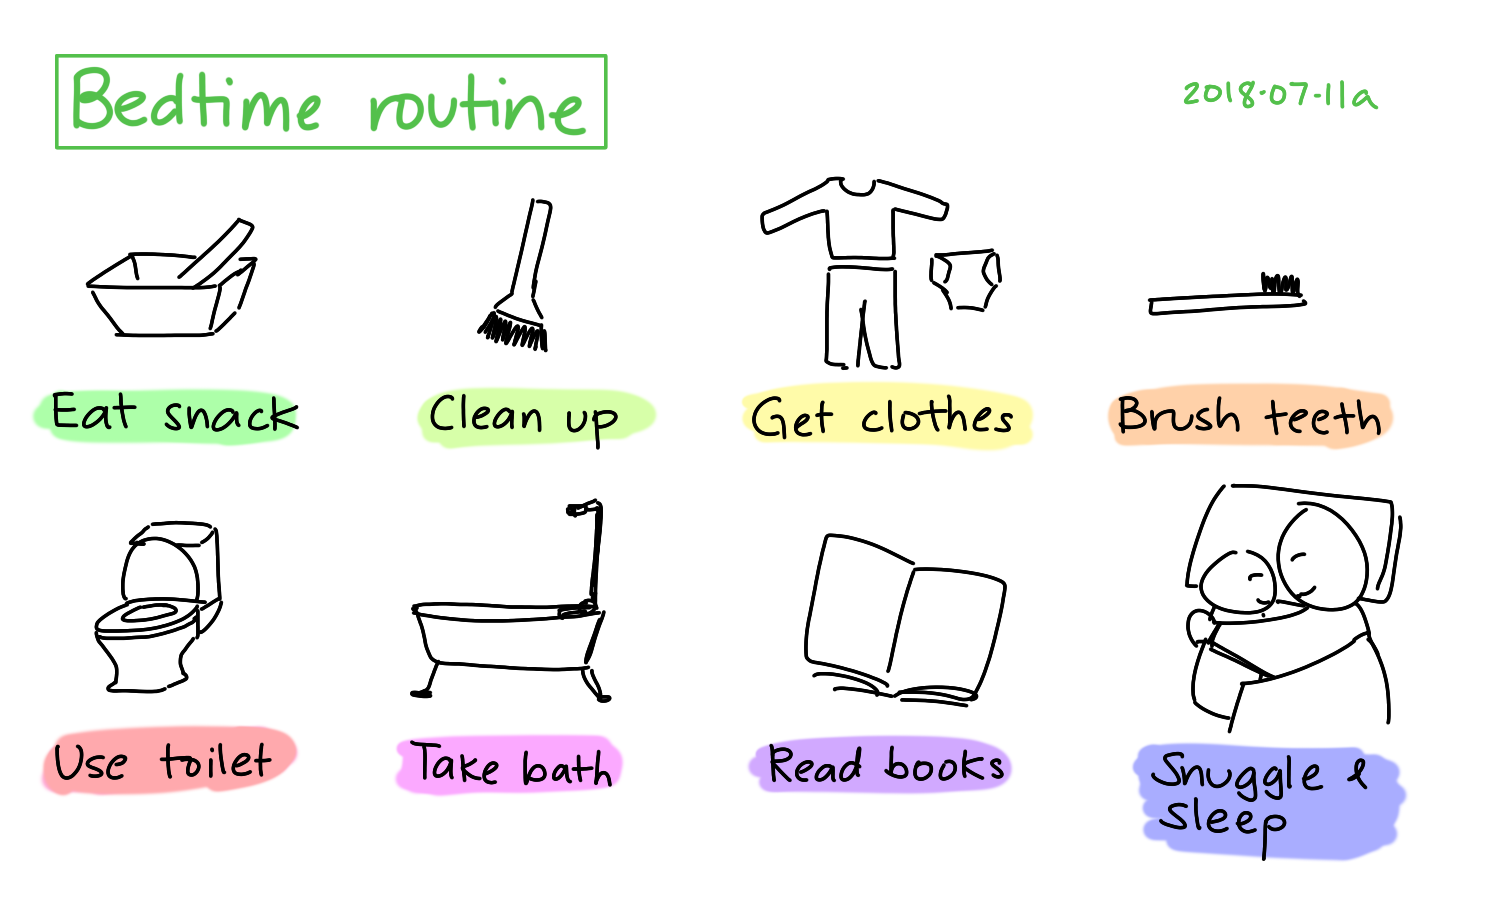 2018-07-11a Bedtime routine #routine #household.png